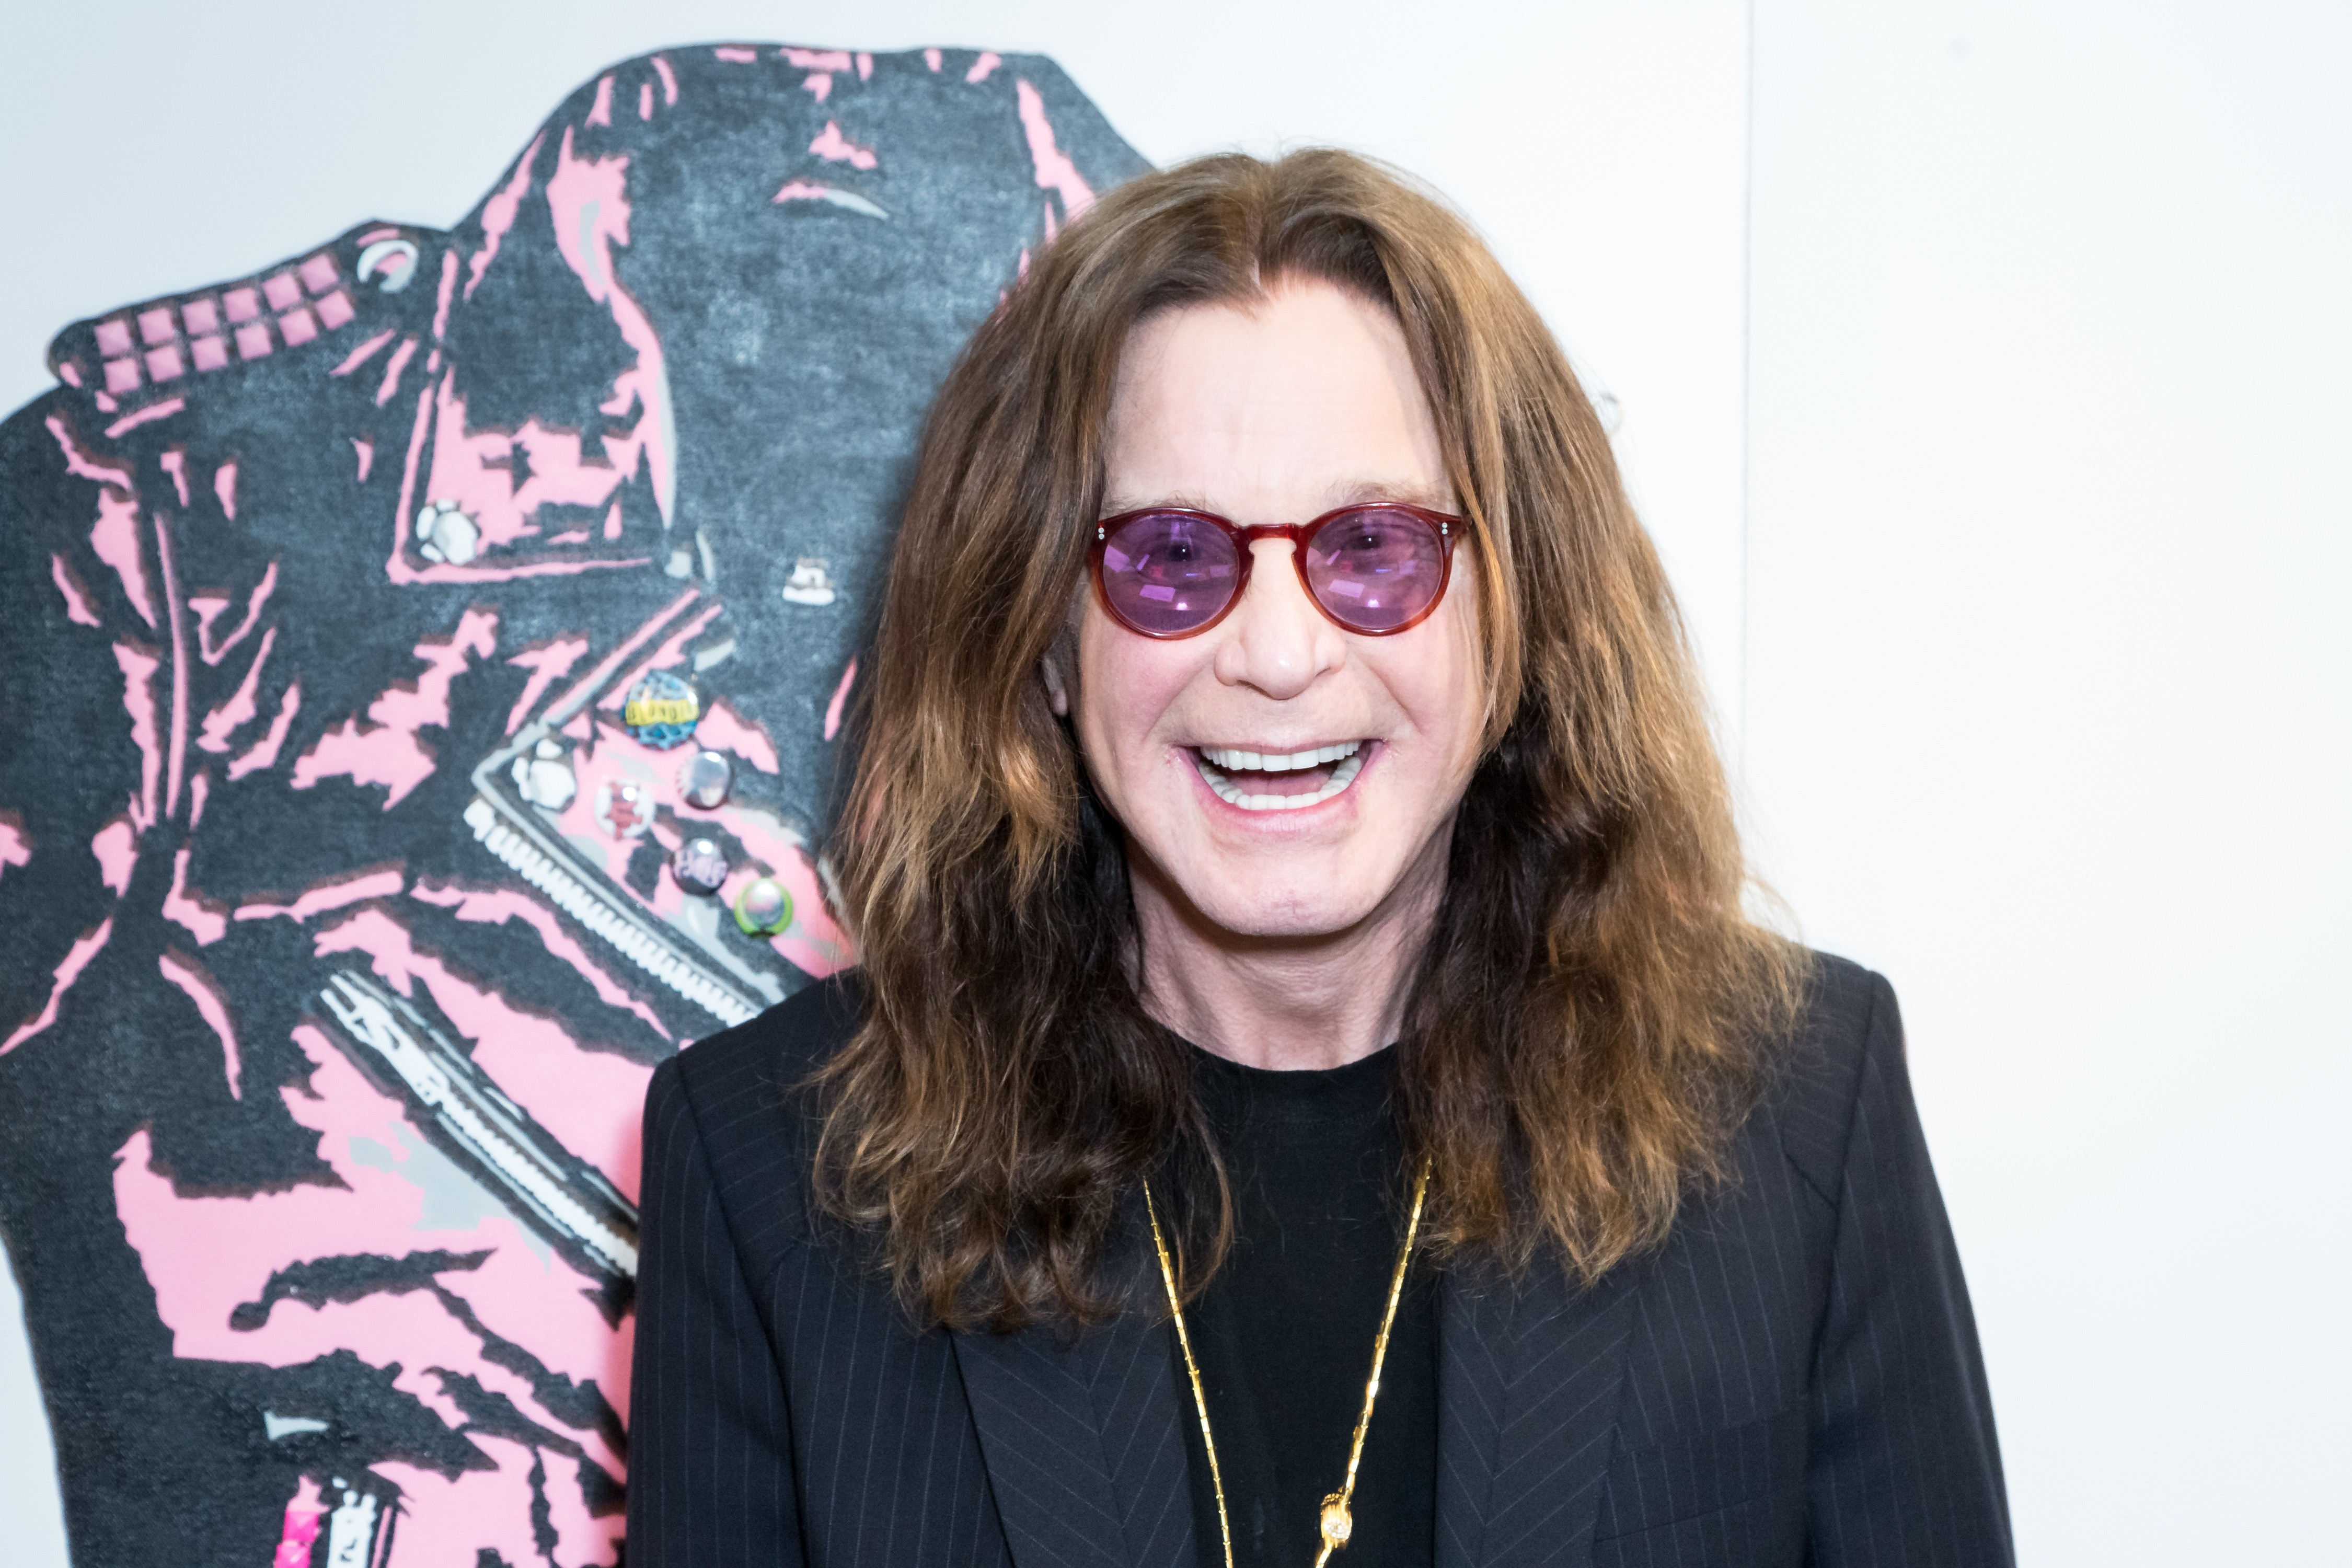 ozzy-osbourne-aeg-lawsuit-dropped-ends-block-booking-policy